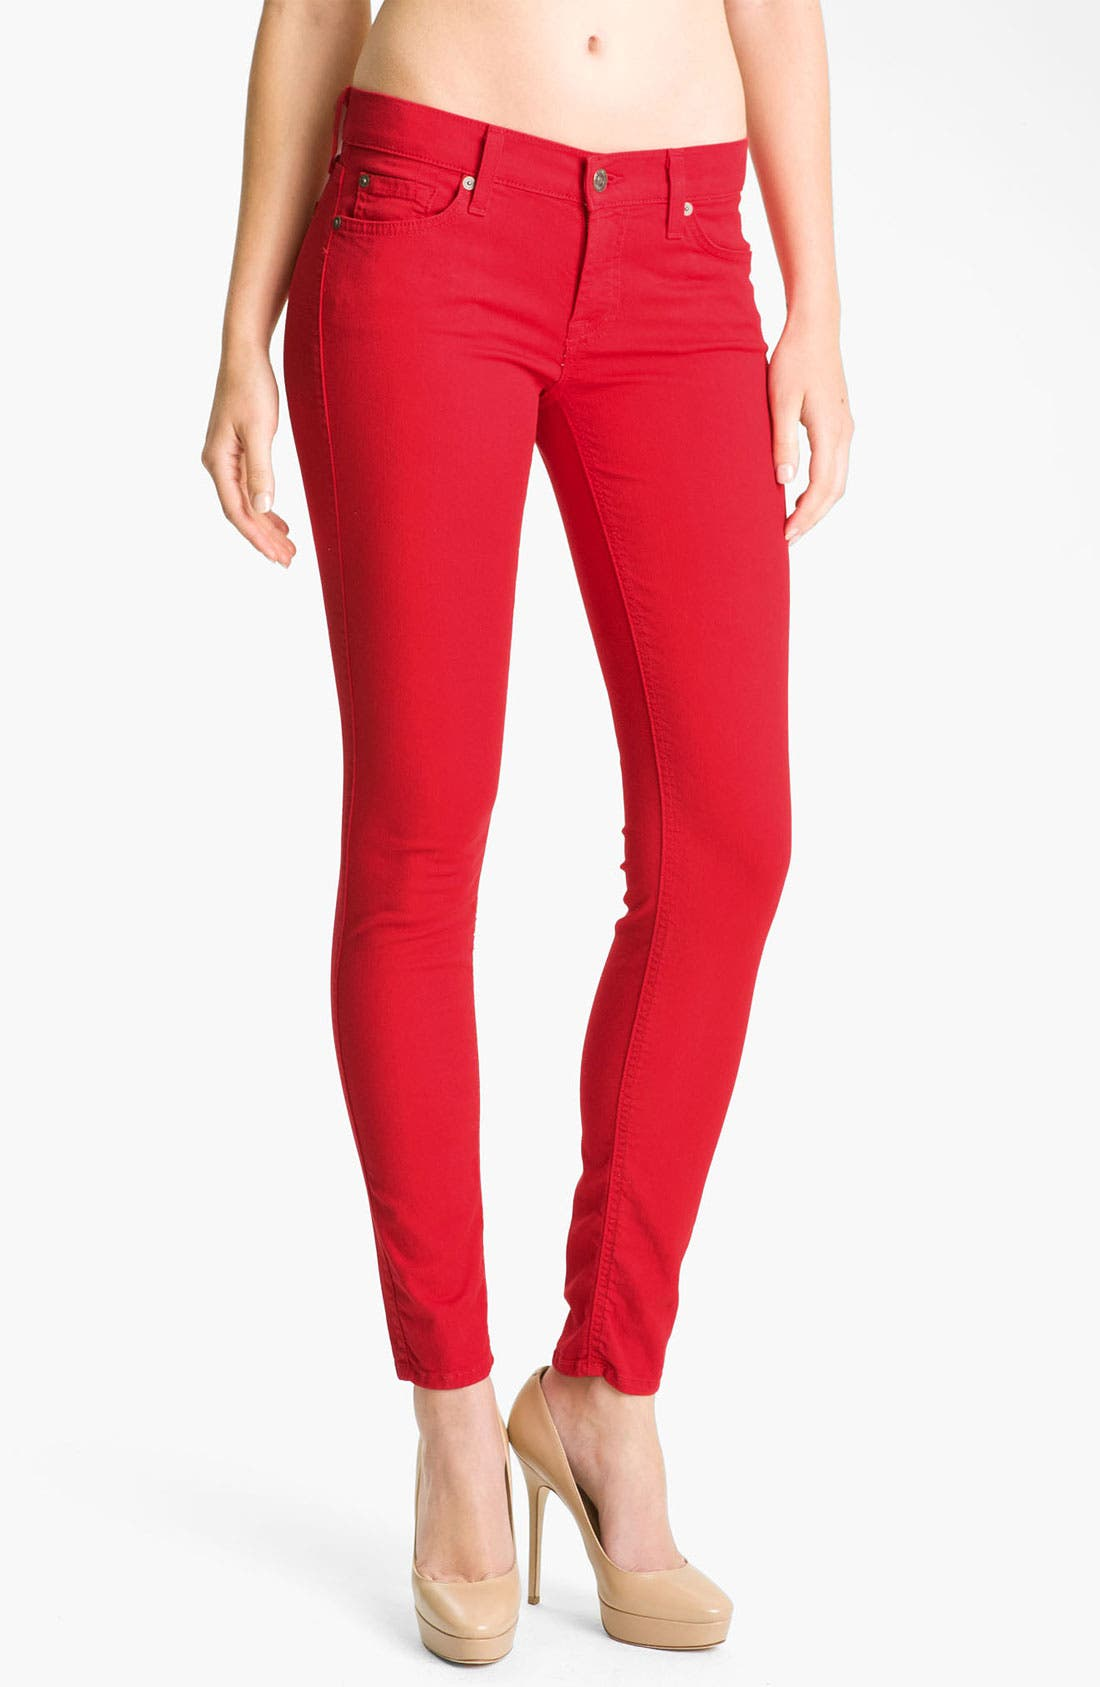 Main Image - 7 For All Mankind® 'The Skinny' Overdyed Jeans (Red Apple)